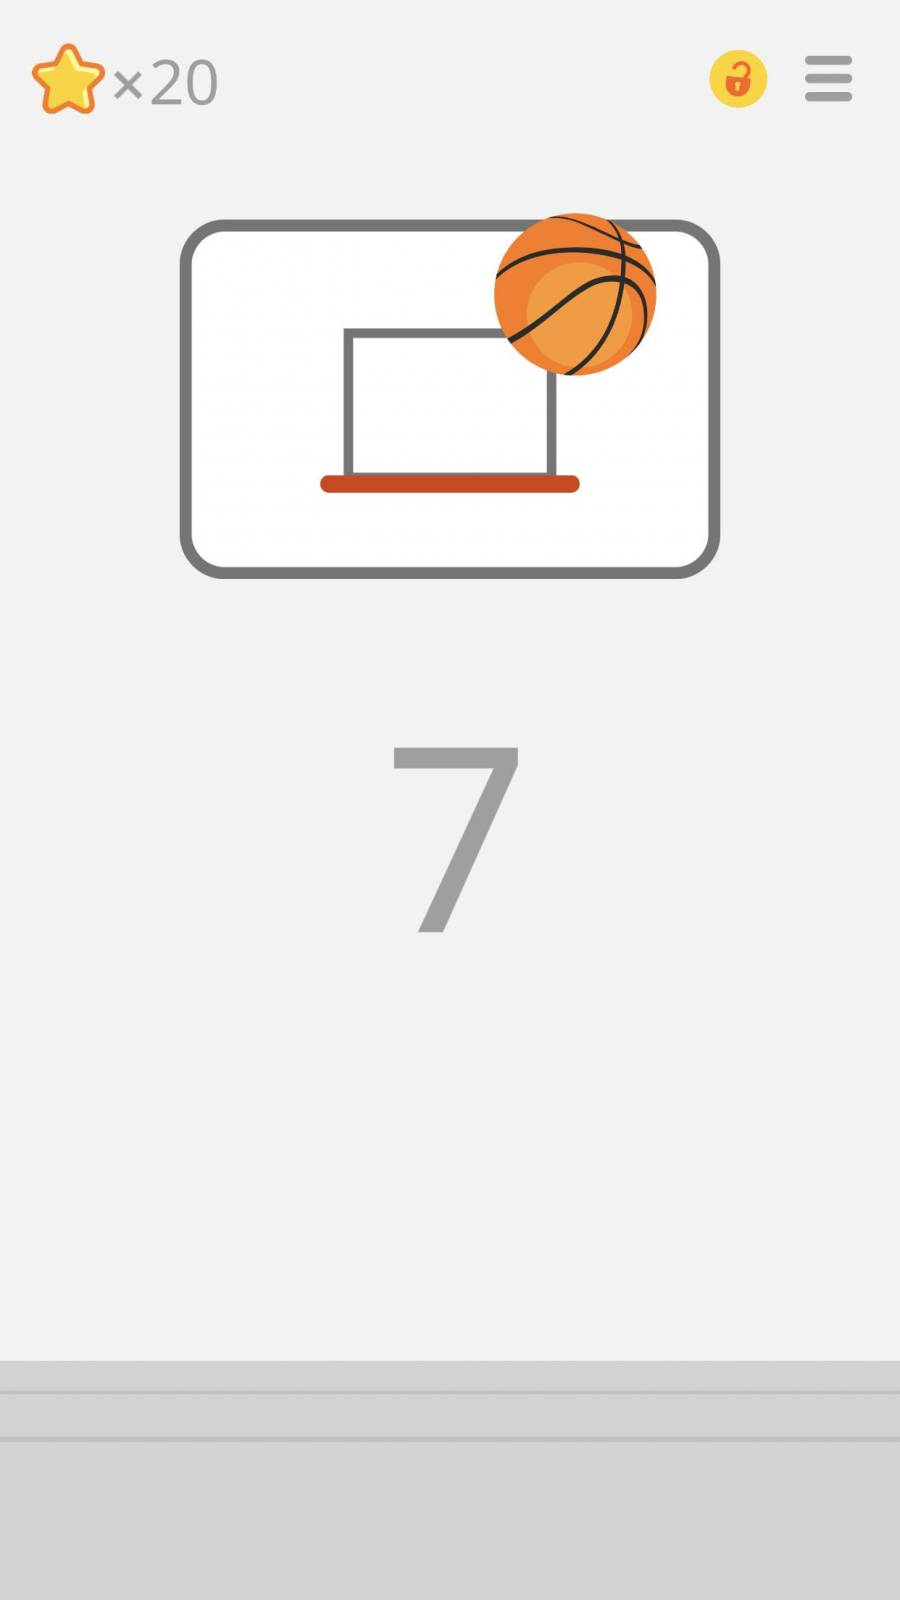 『Ketchapp Basketball』 画像